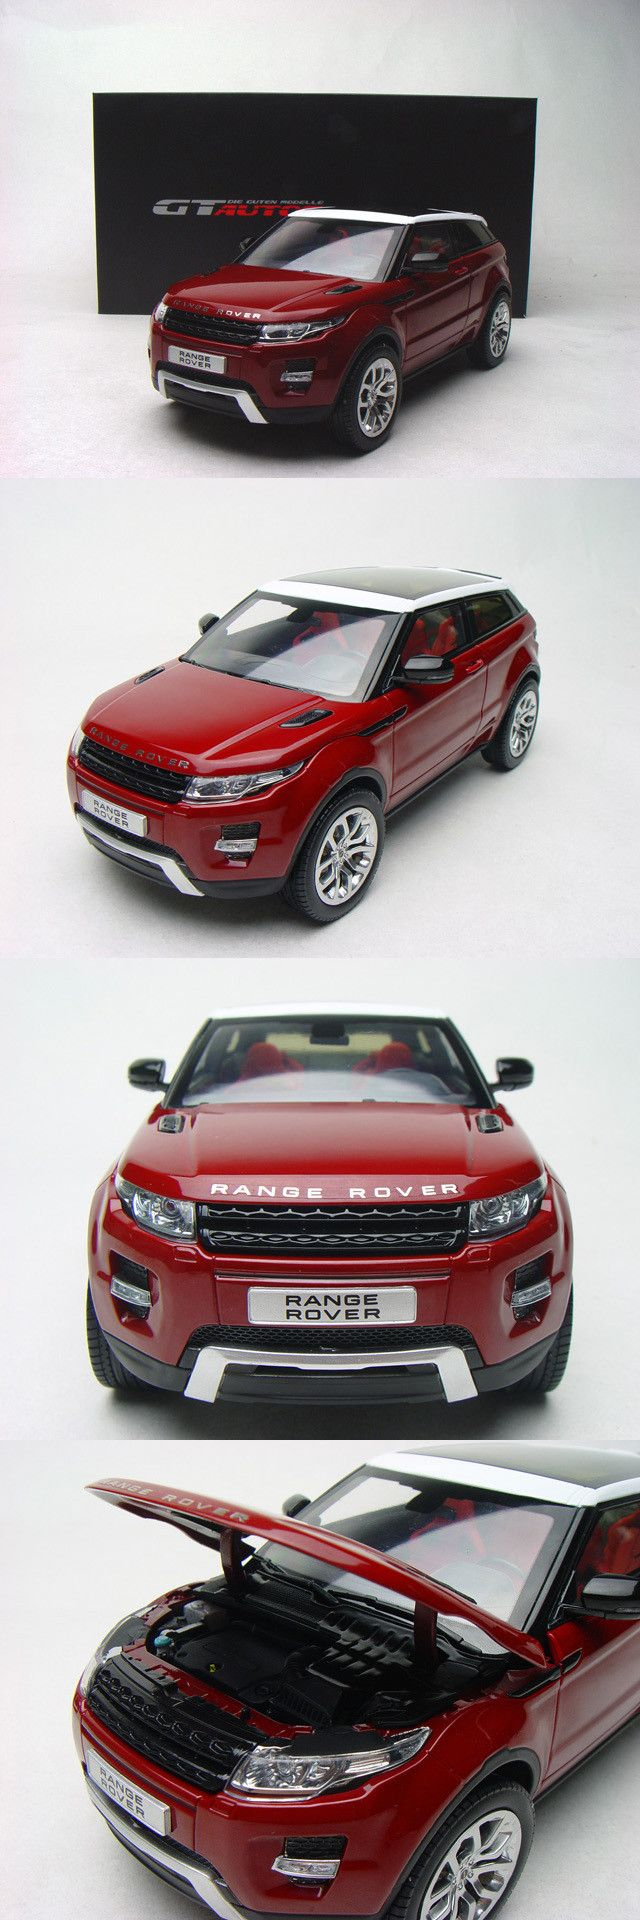 1/18 Range Rover Evoque. Diecast model cars have really changed over the years. - Imgur